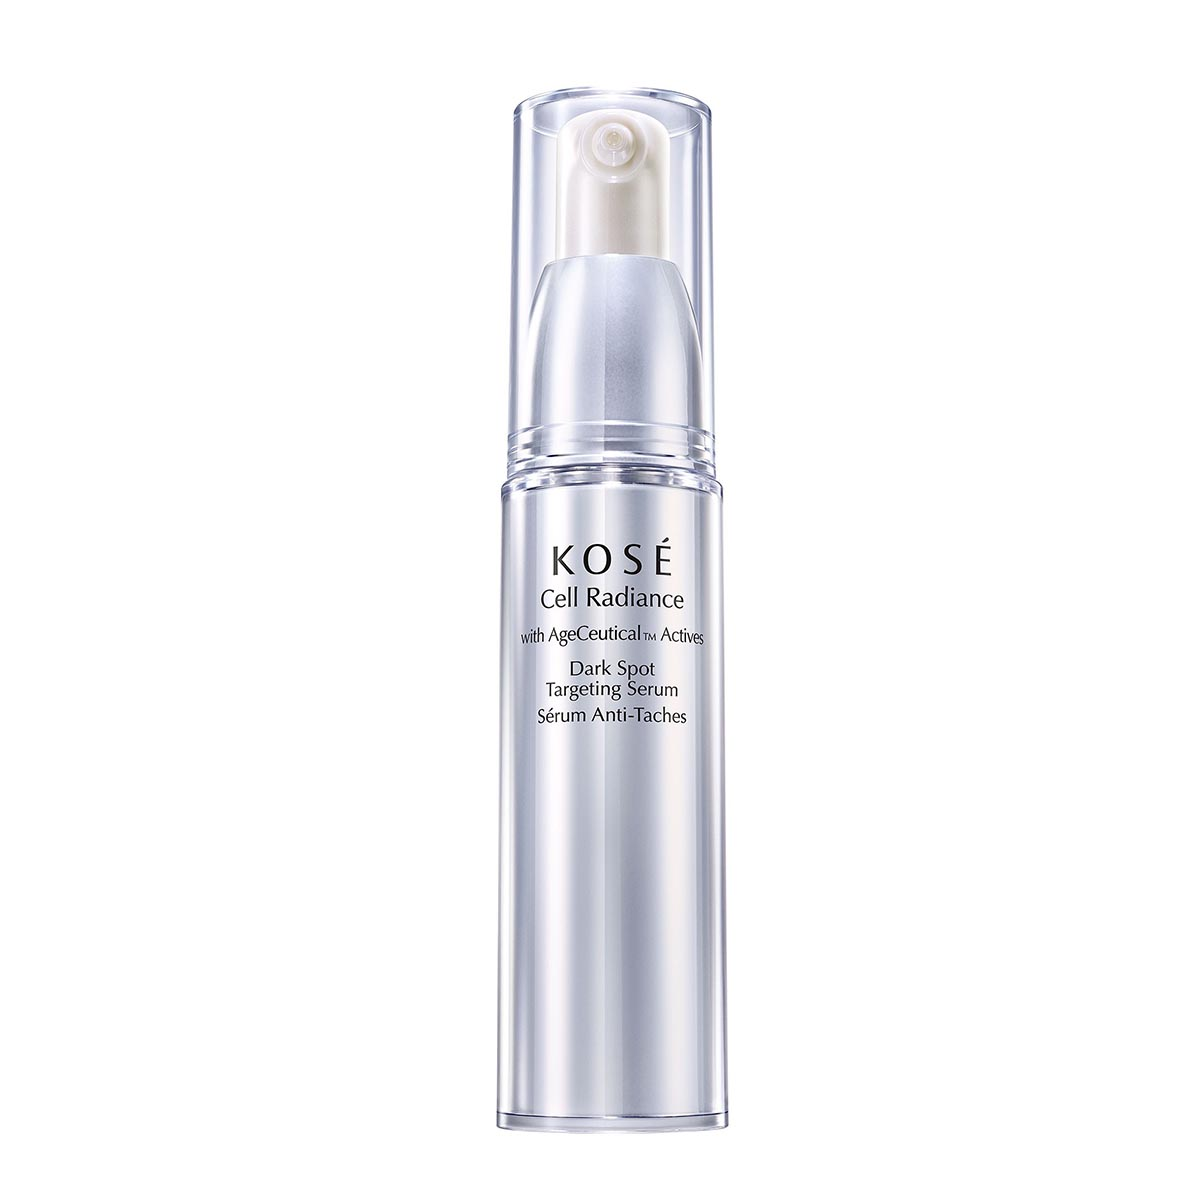 Kose cell radiance with ageceutical tm actives dark spot targeting serum 30ml